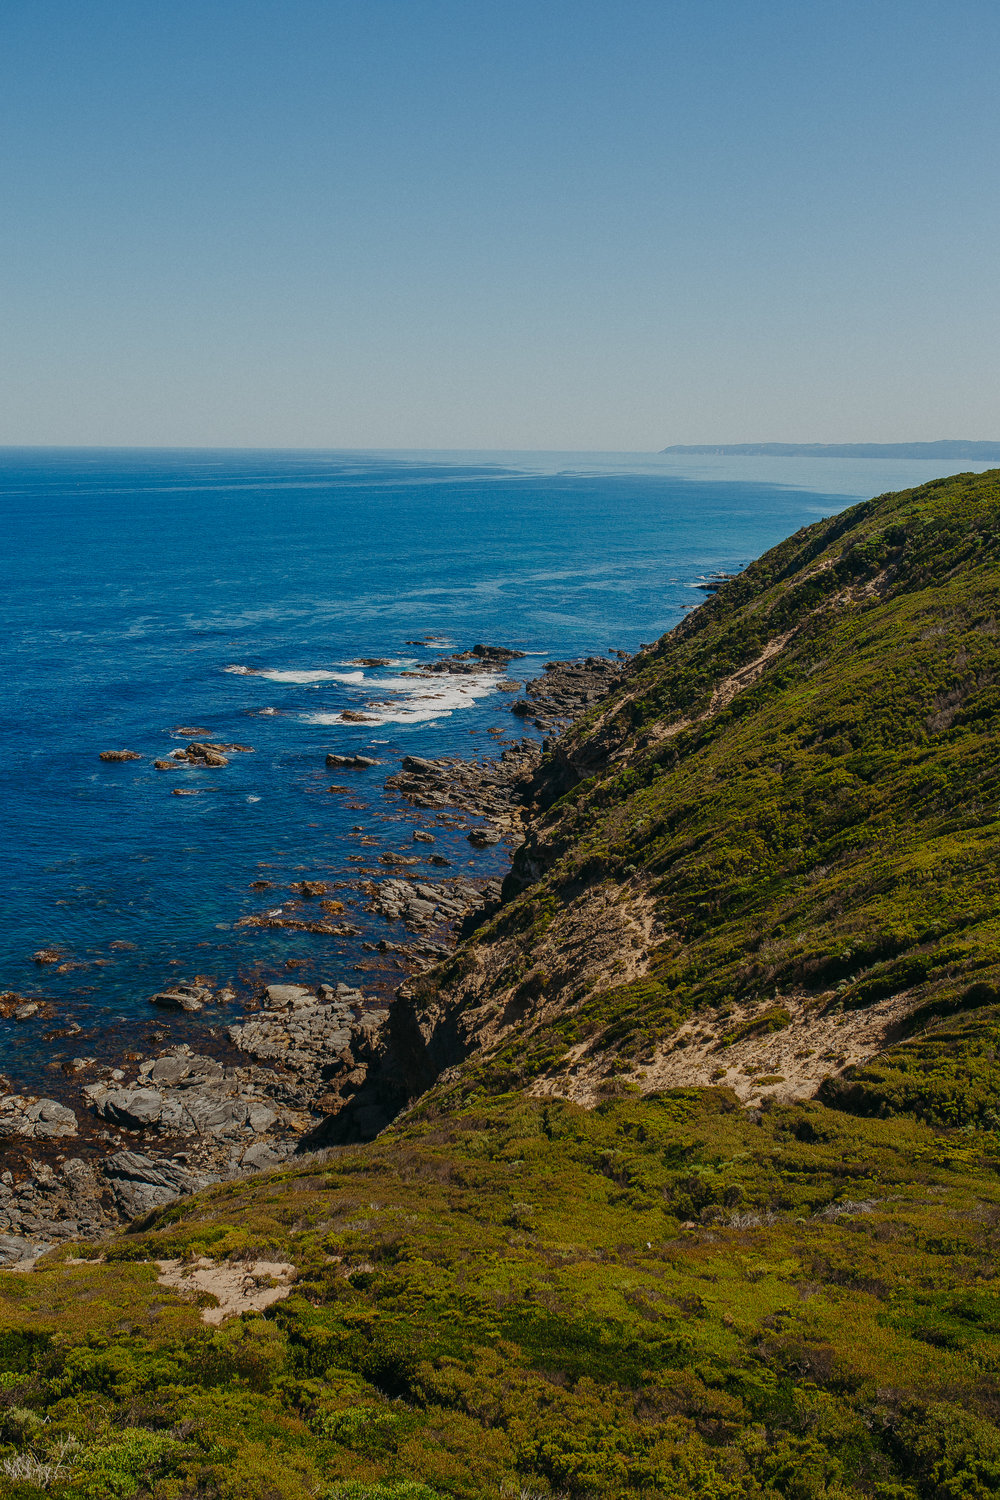 great-ocean-road-australia-trip-7.jpg